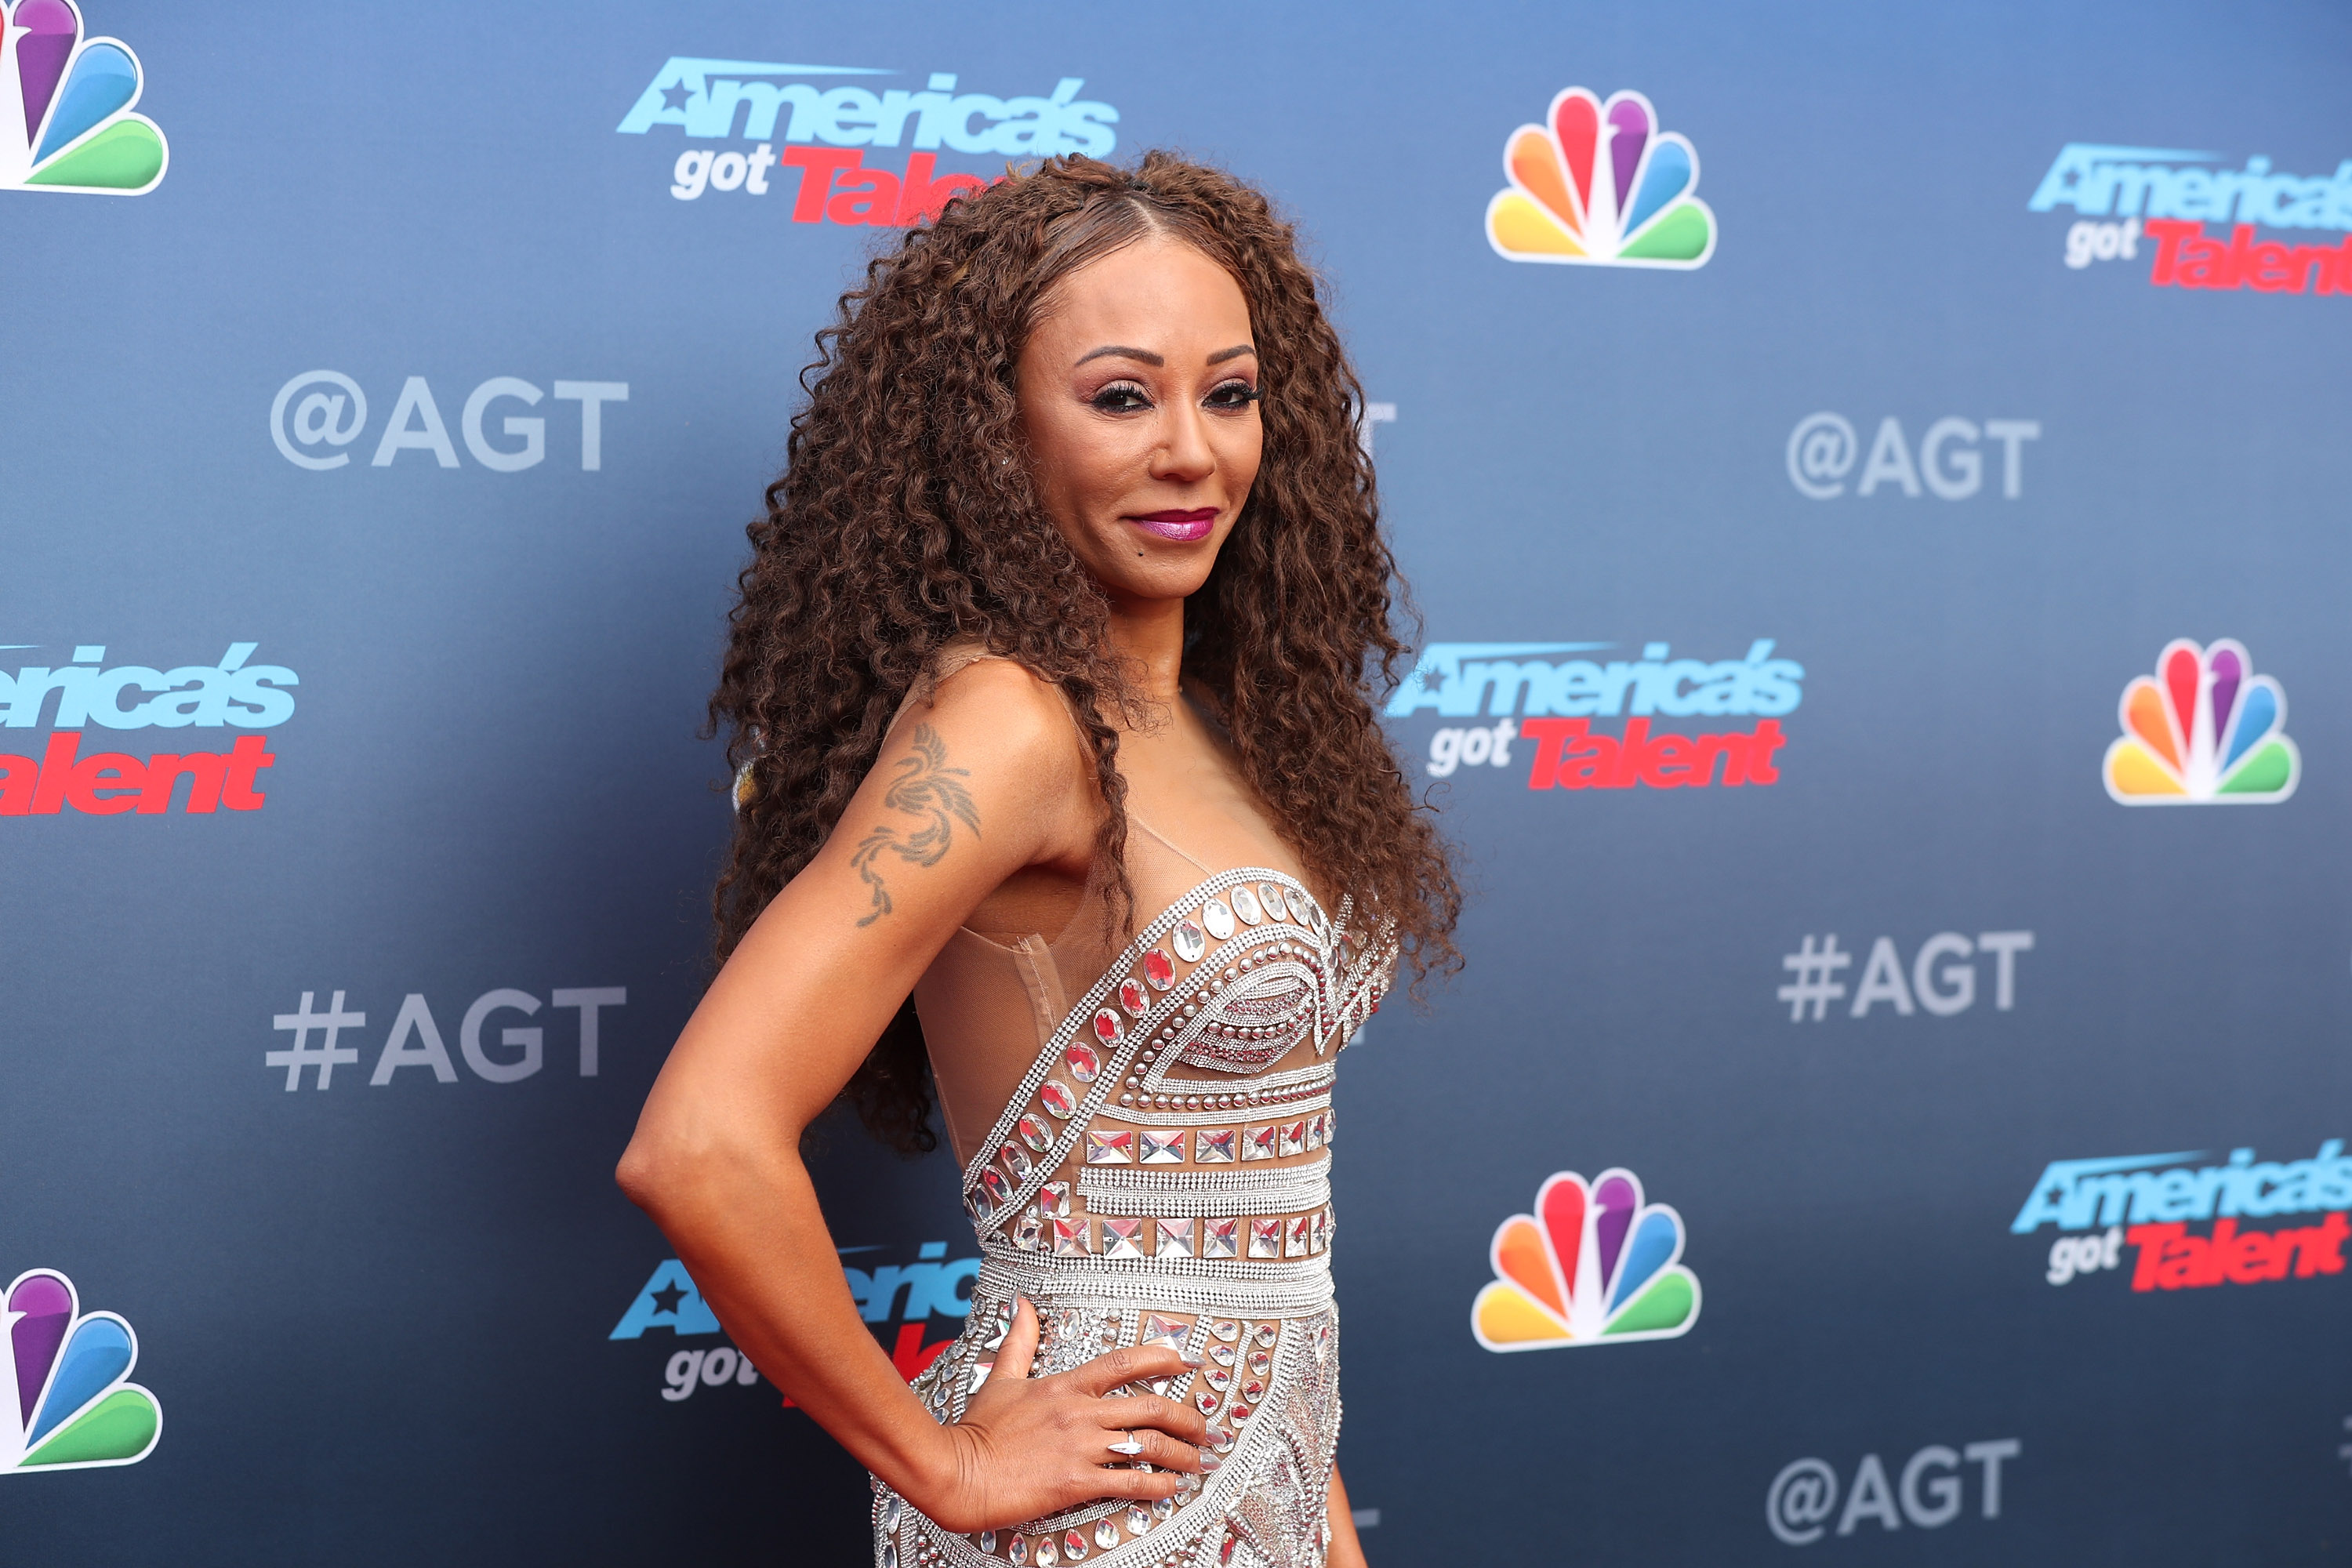 Mel B attends the red carpet kickoff for 'America's Got Talent' season 13 at Pasadena Civic Auditorium on March 12, 2018, in Pasadena, California. (Getty Images)